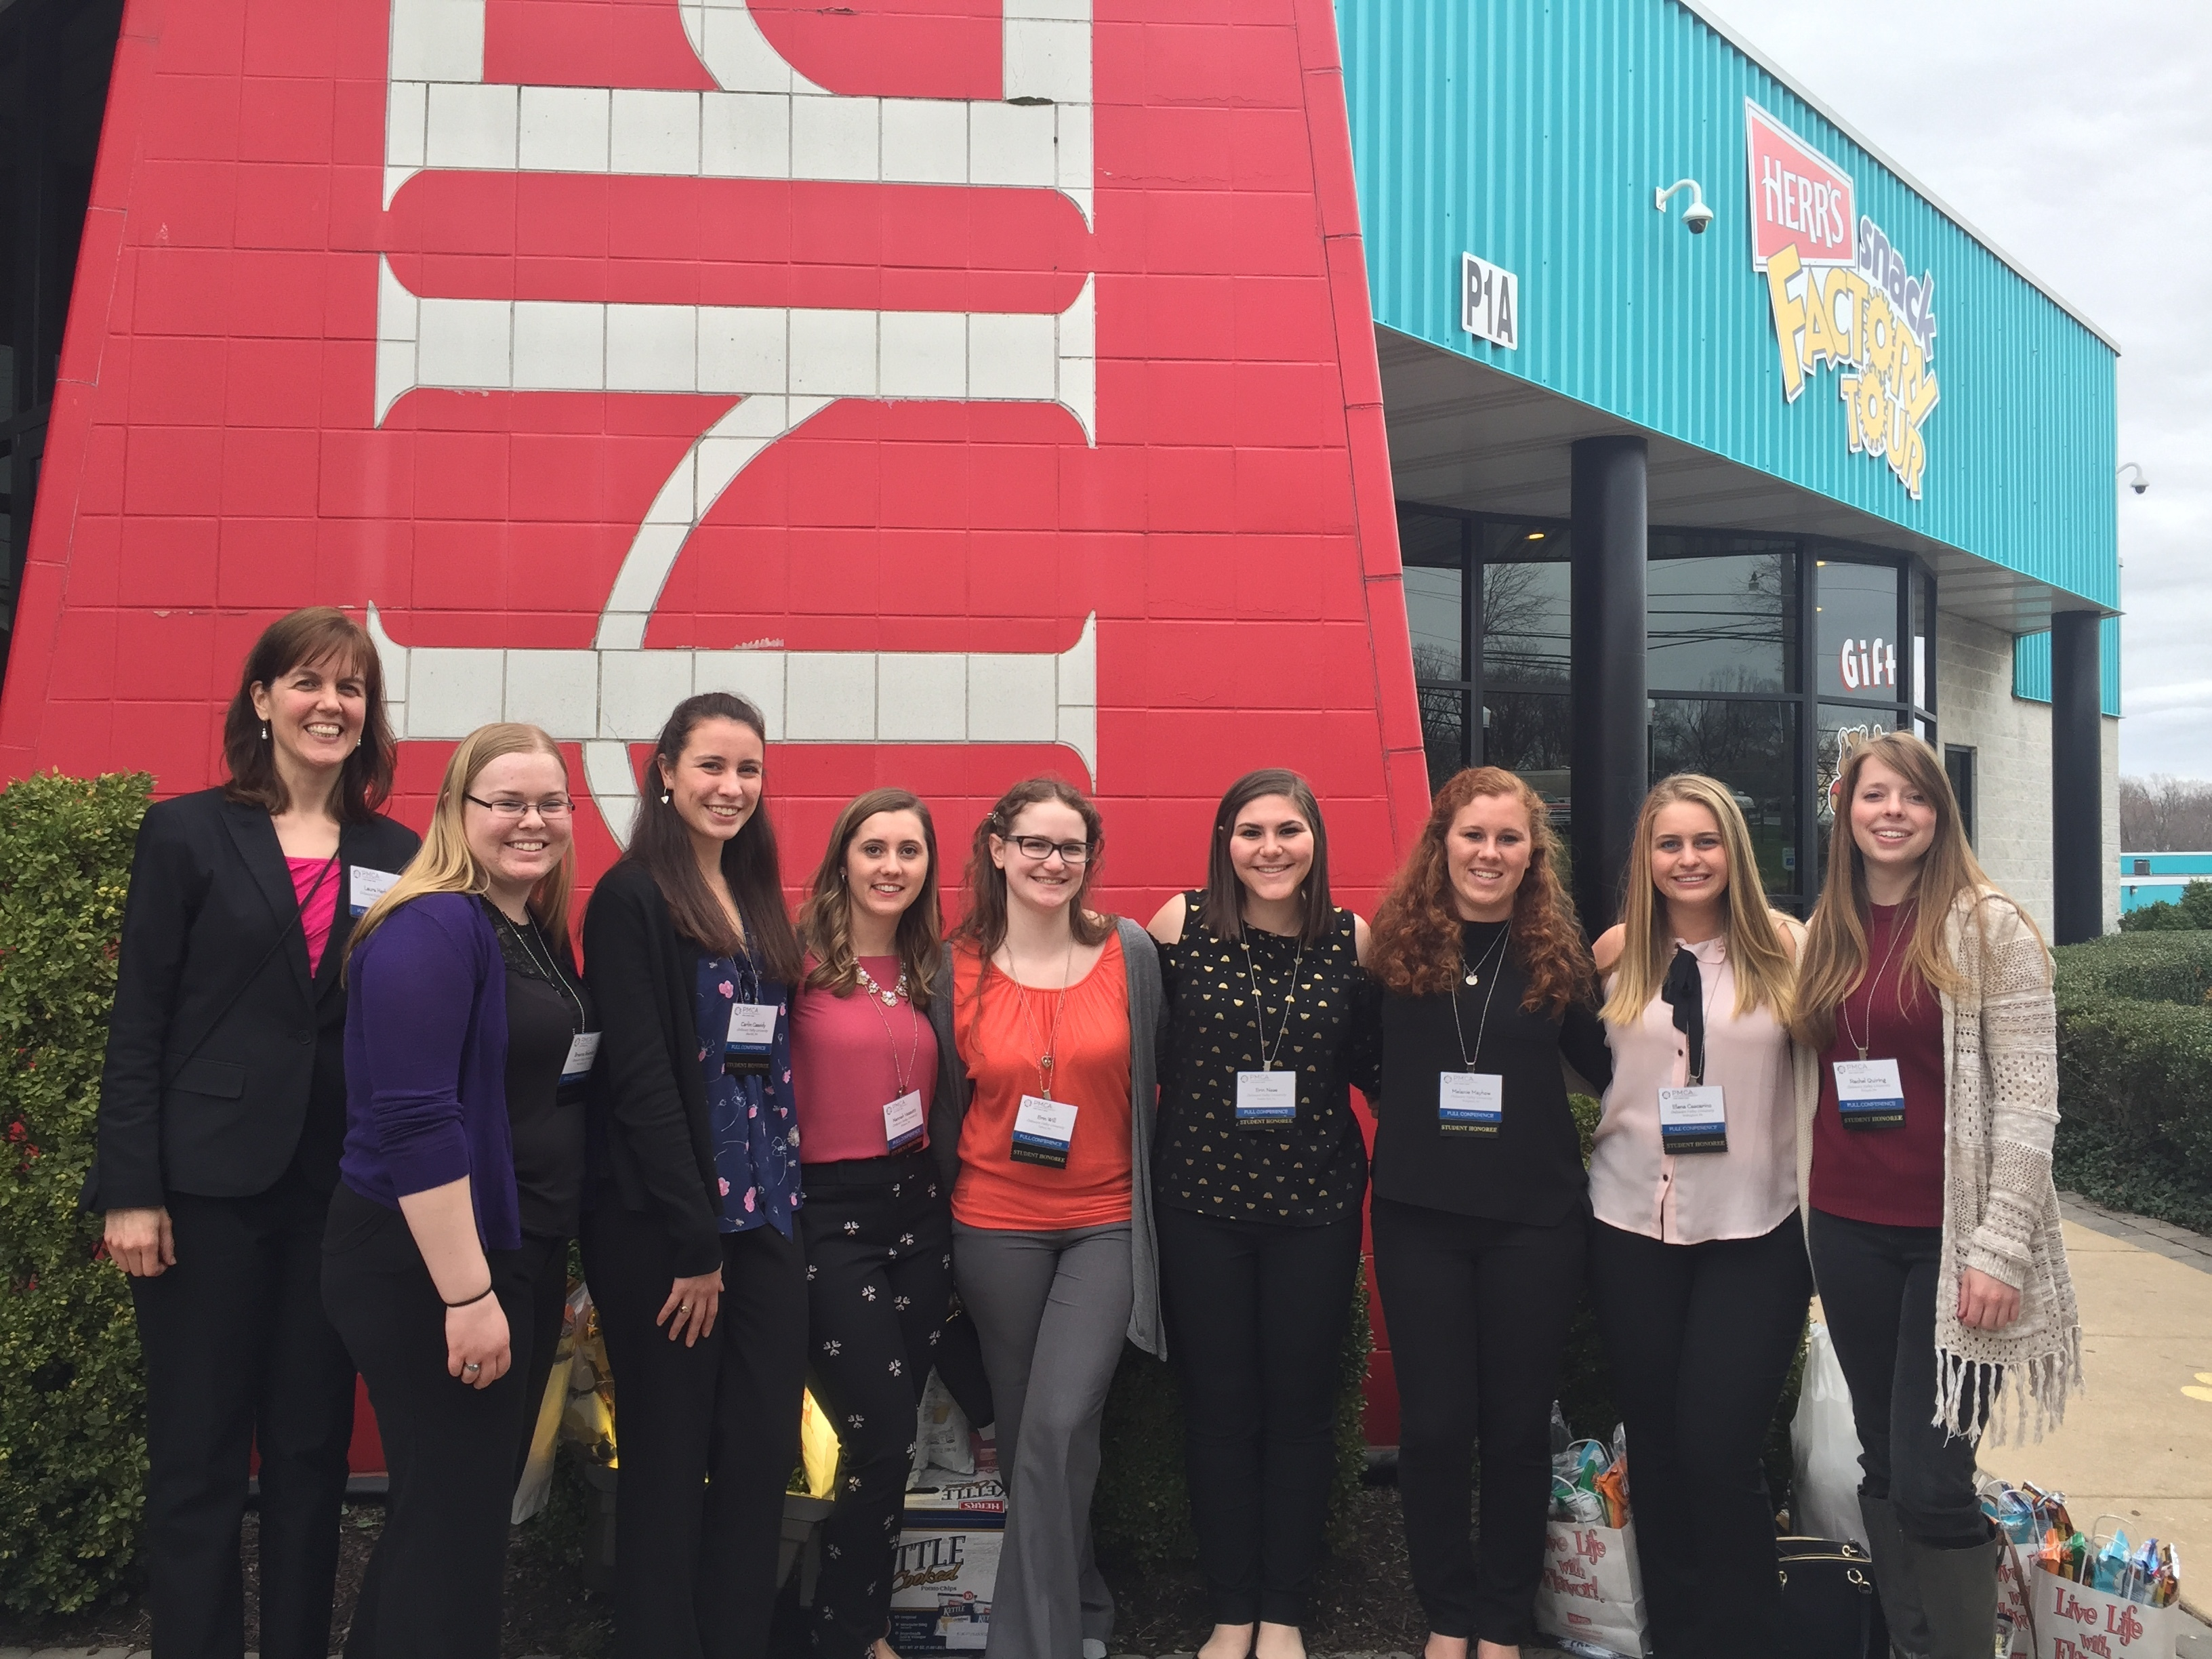 Delval student group at the herrs facility 2